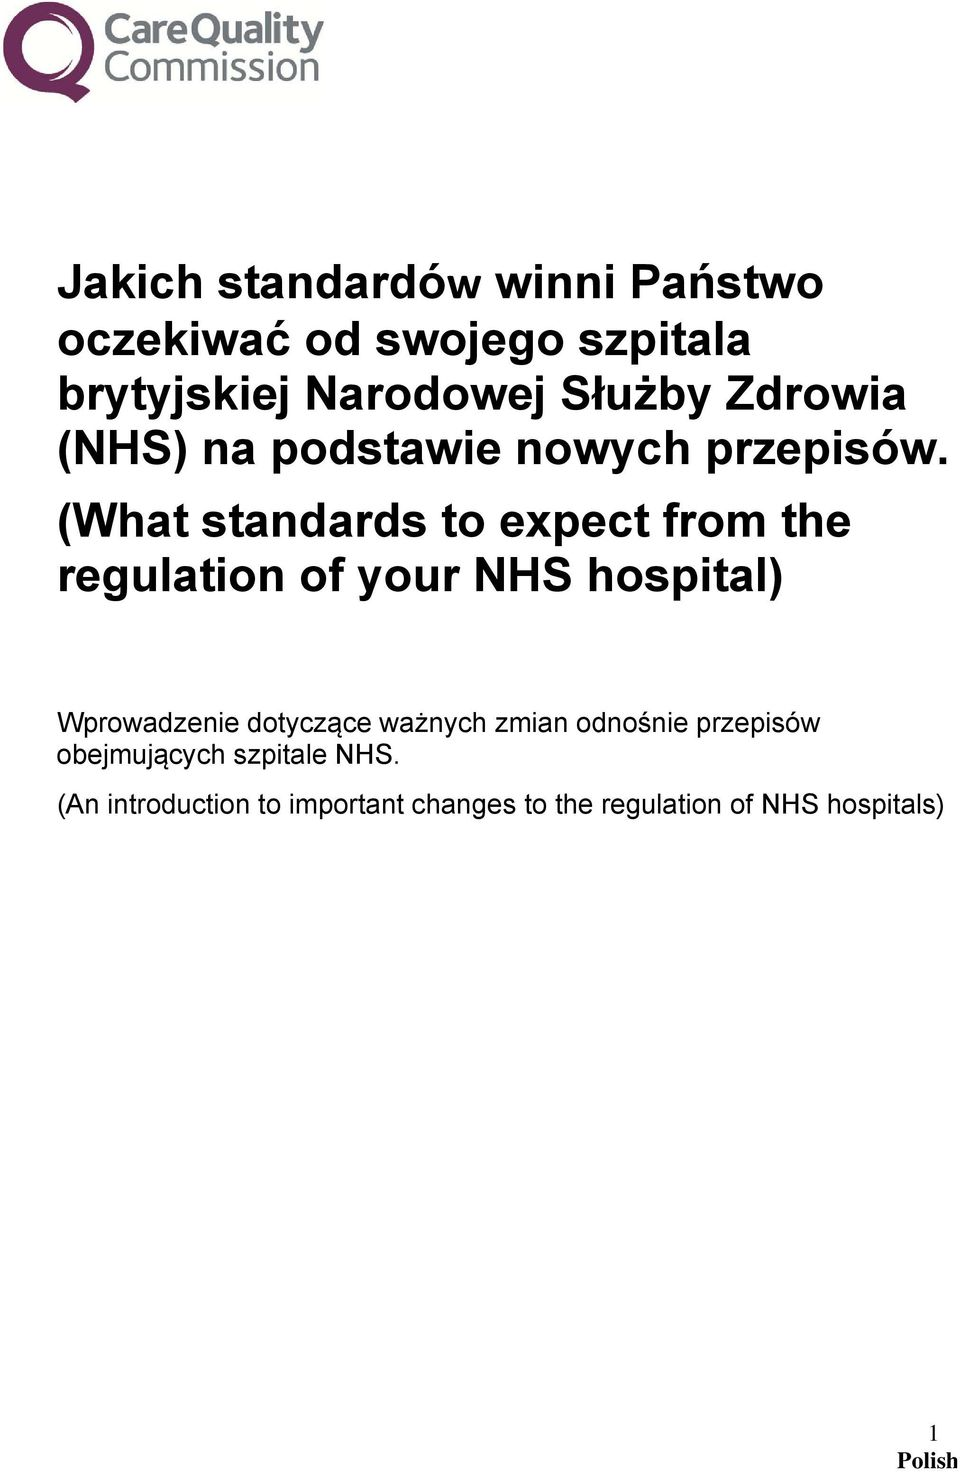 (What standards to expect from the regulation of your NHS hospital) Wprowadzenie dotyczące